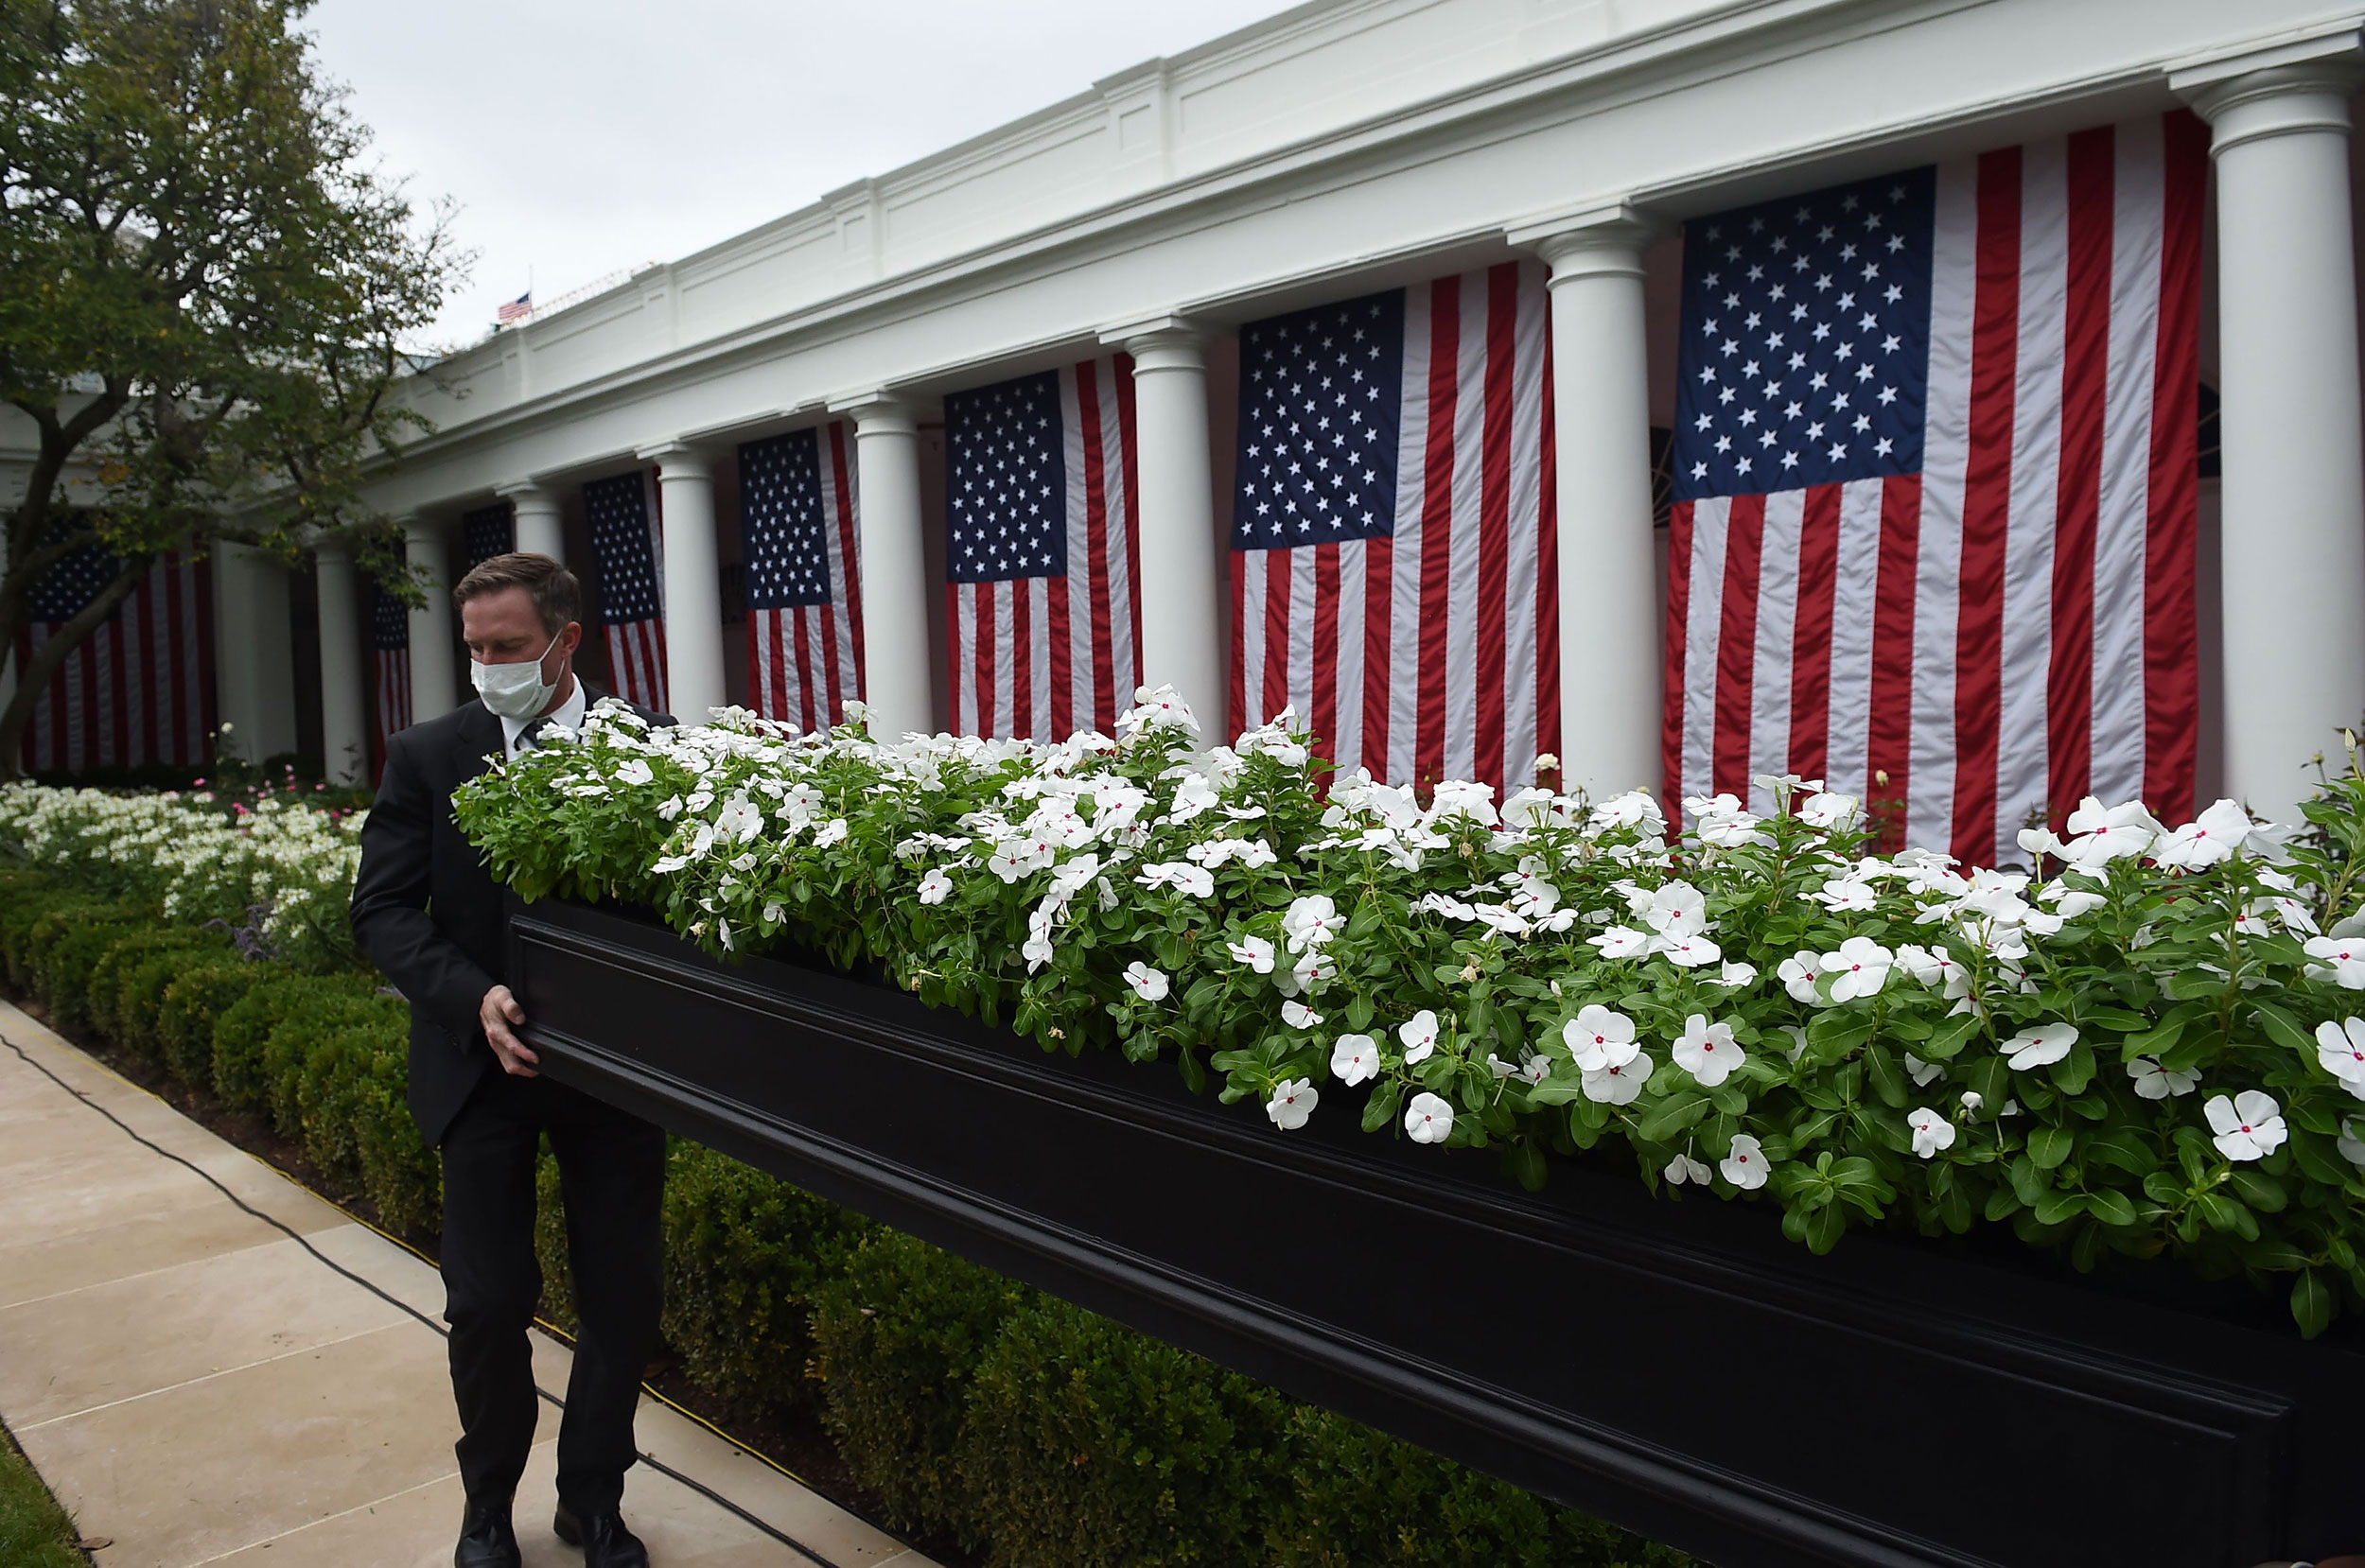 White House staff prepare the Rose Garden ahead of President Trump's scheduled Supreme Court nomination announcement on Saturday.